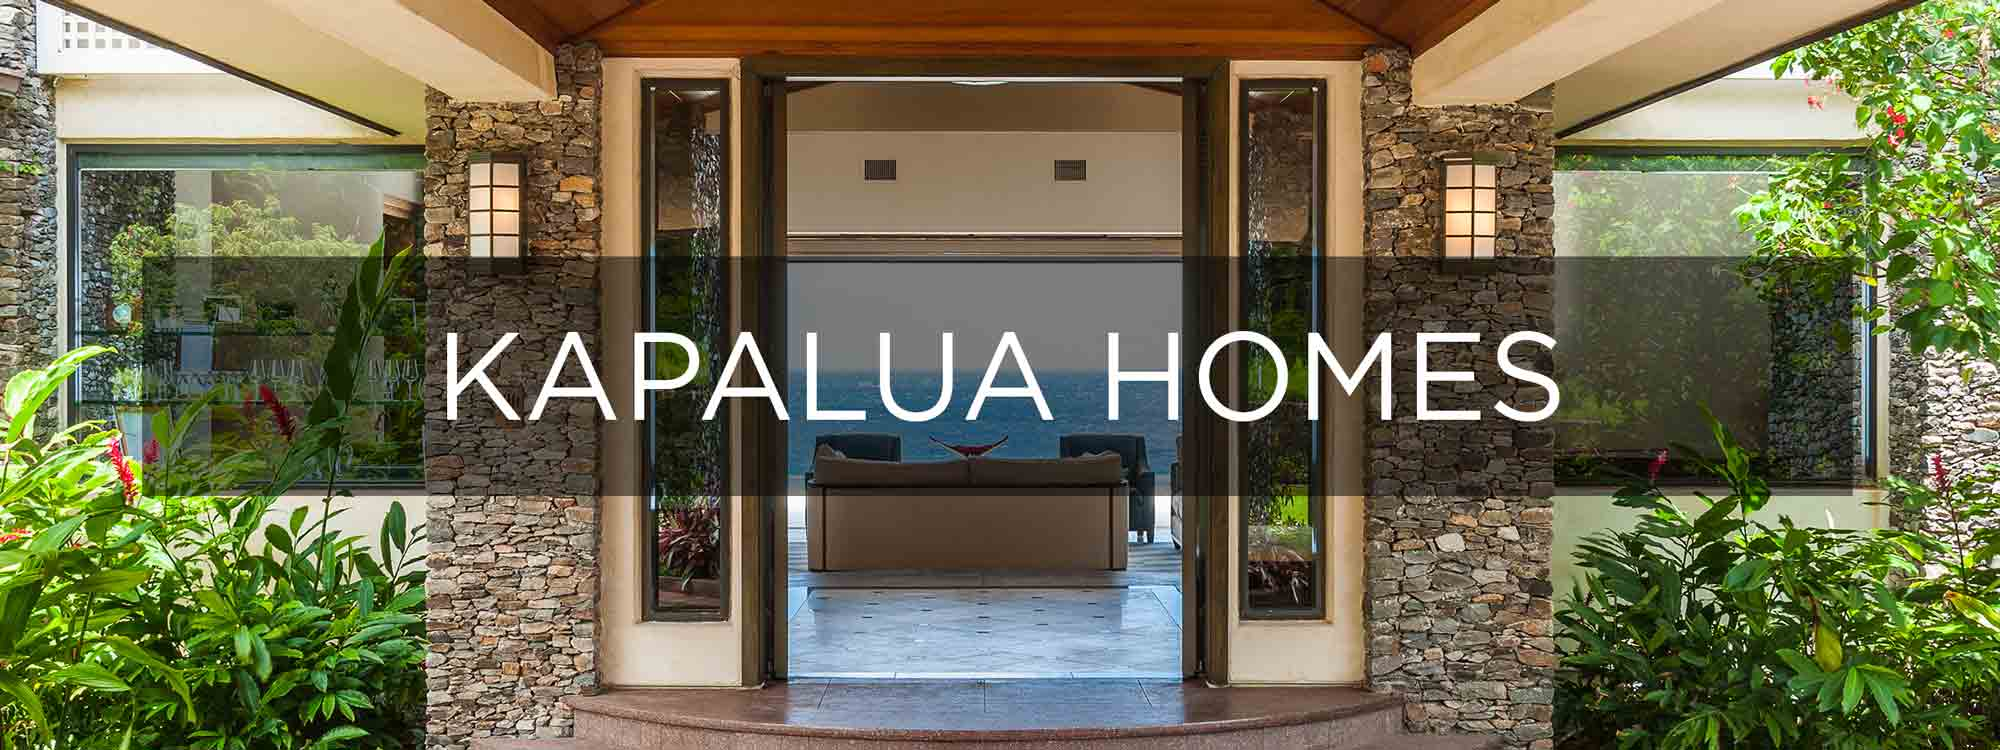 Maui, Luxury Homes and Estates for Sale in Kapalua